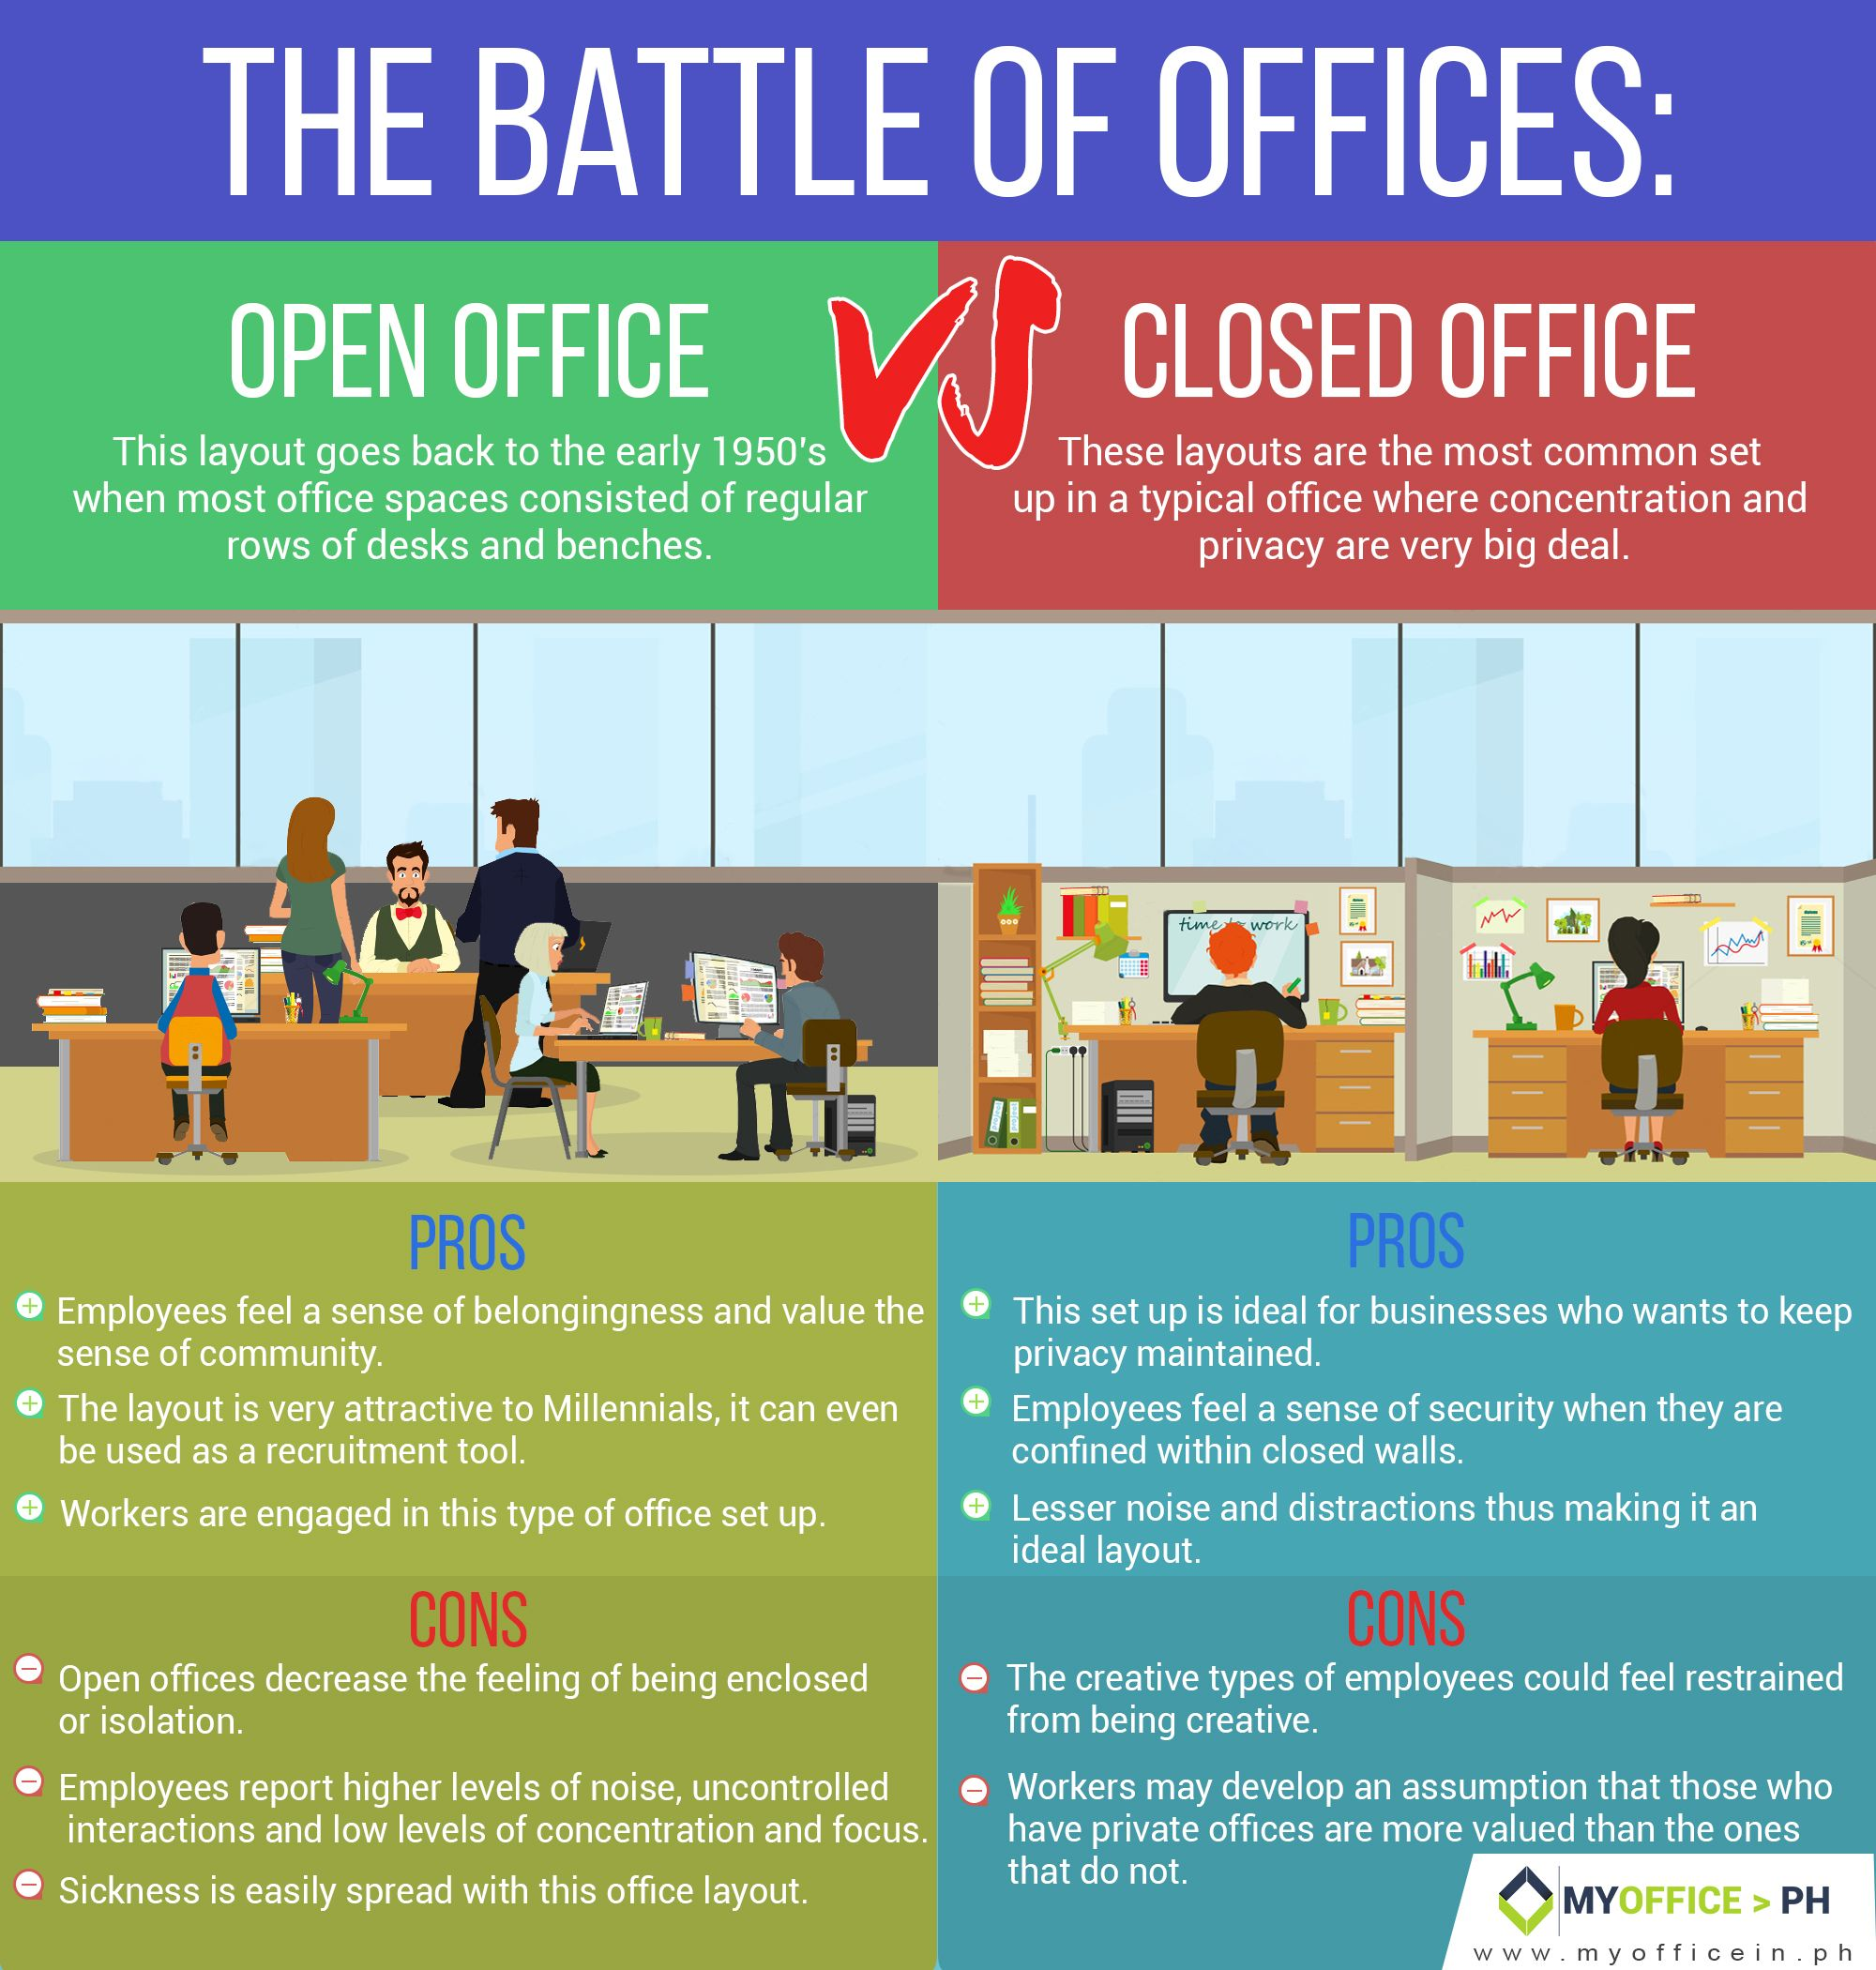 learn the pros and cons of open and closed office layouts office  - learn the pros and cons of open and closed office layouts office setup